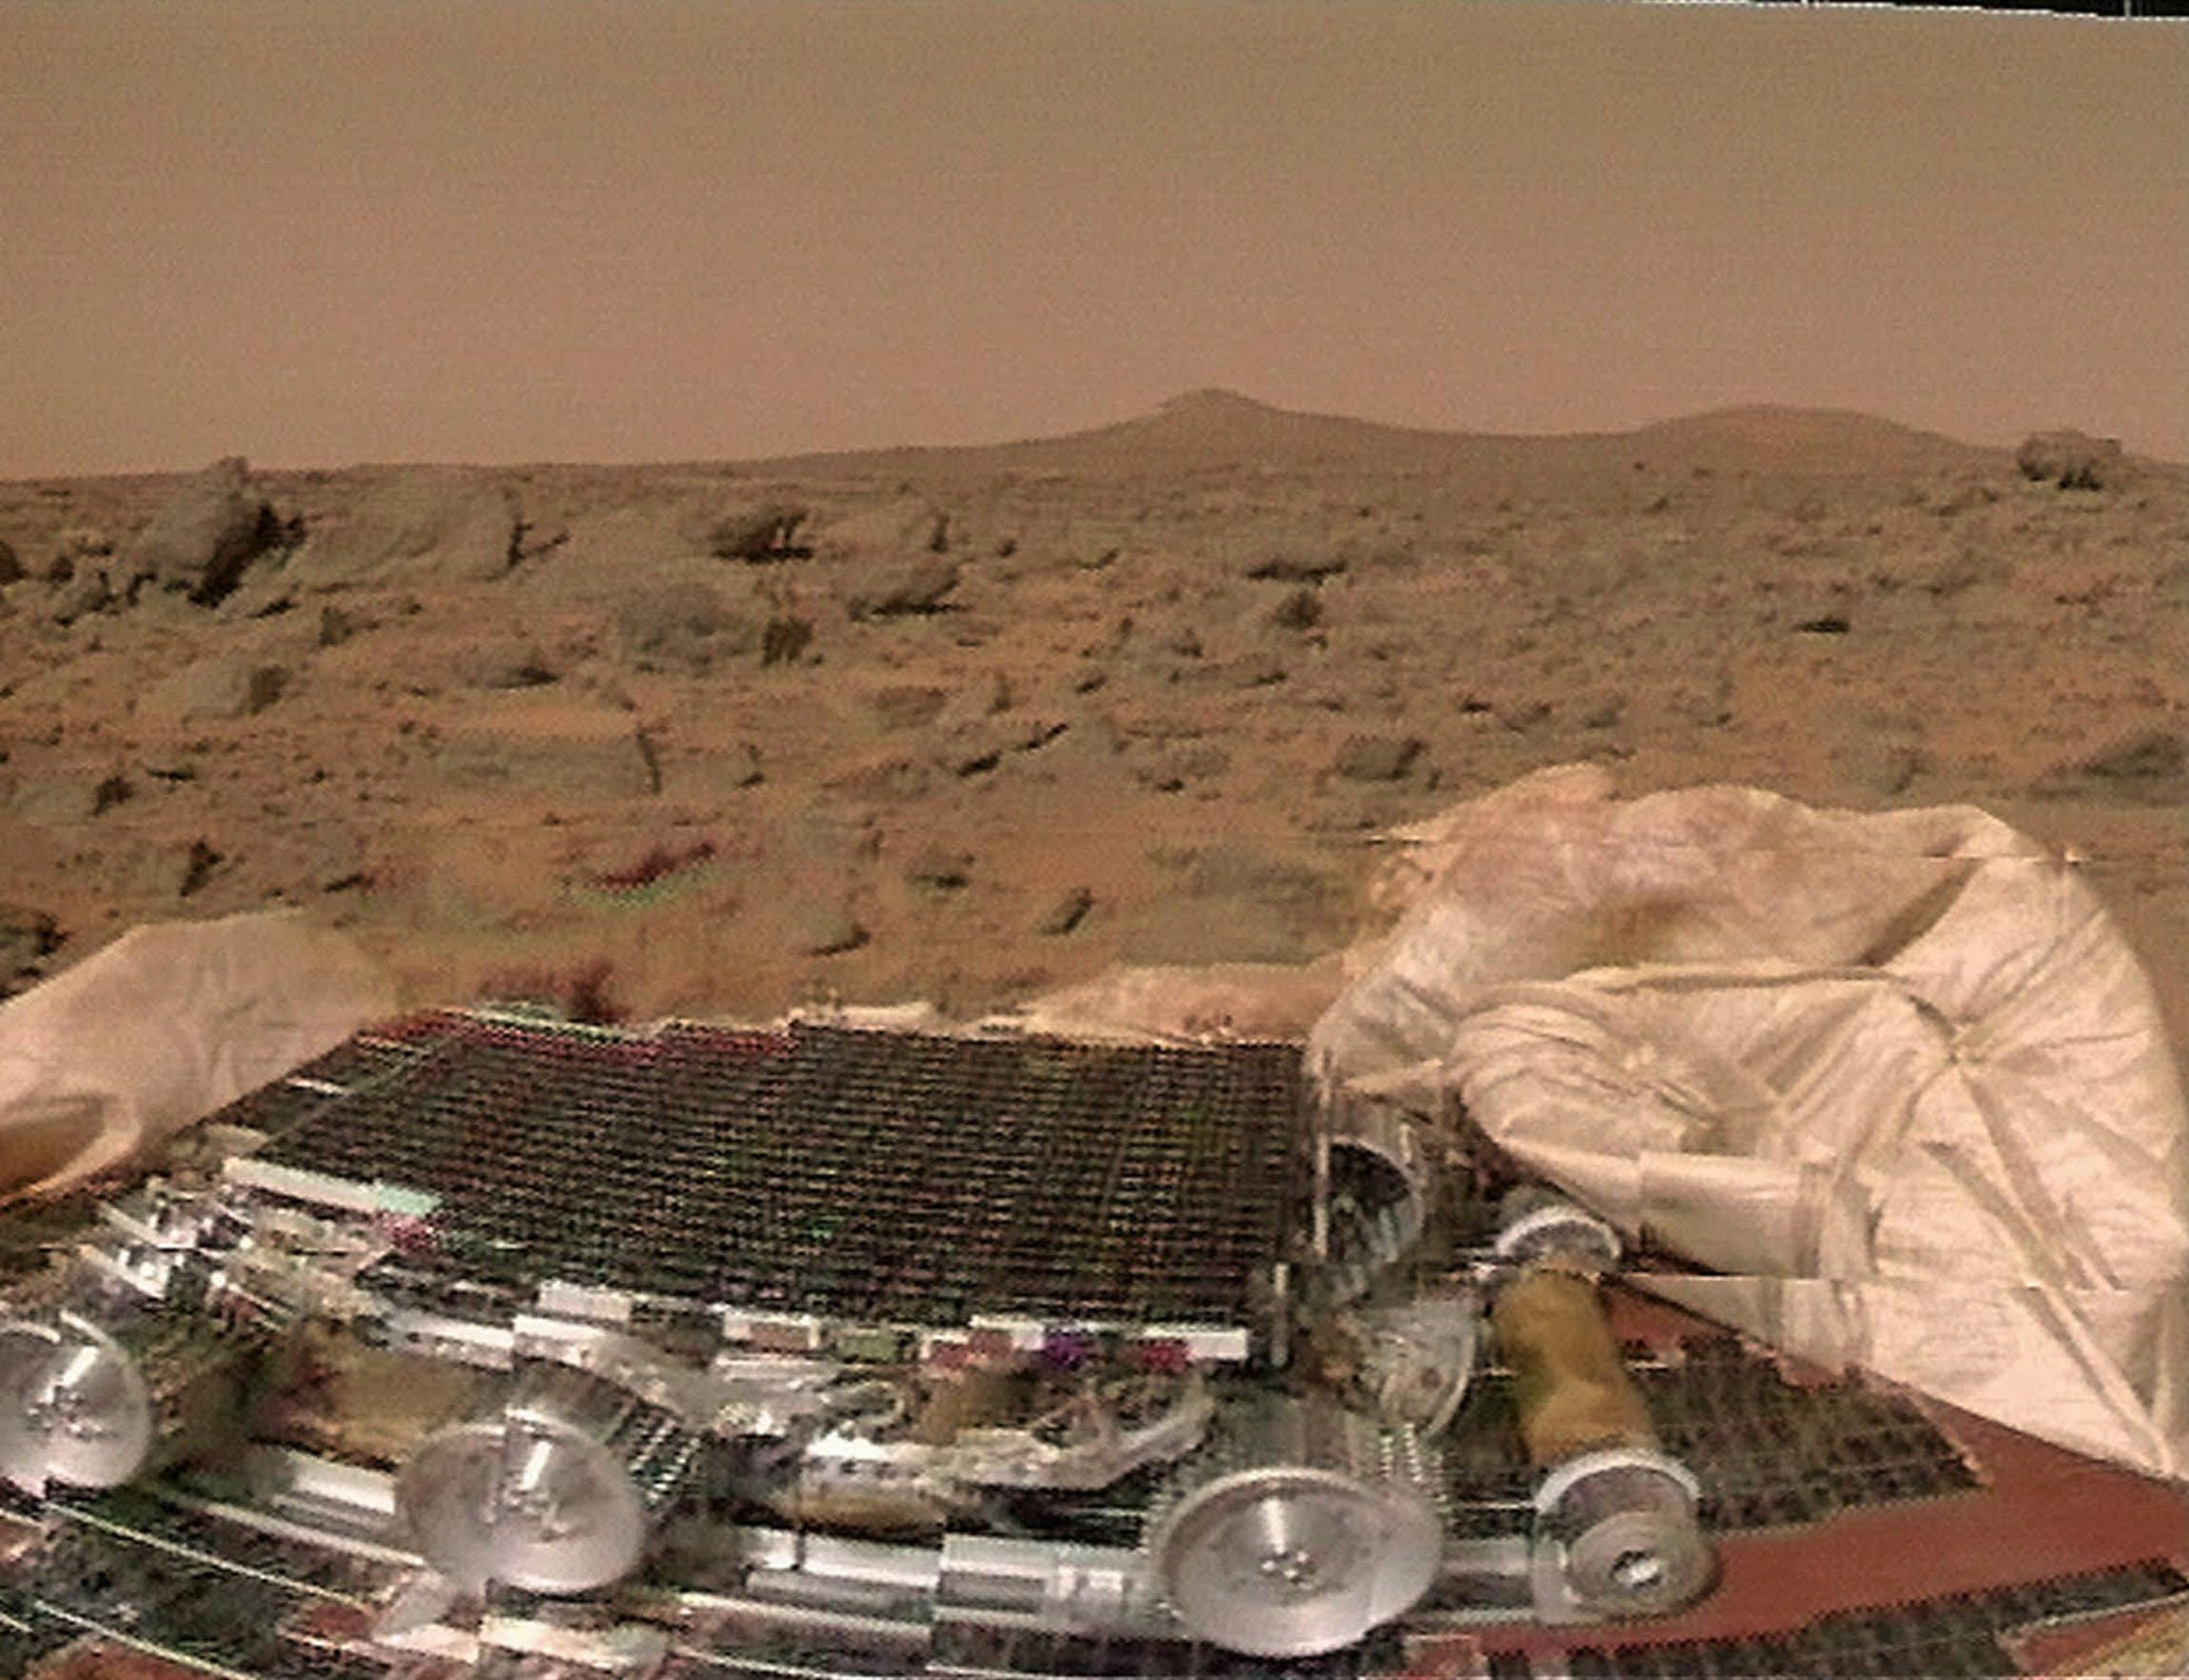 1997: The surface of Mars is shown in this image transmitted to Earth from the Mars Pathfinder probe on Friday, July 4 This NASA image represents the first time since 1976 images of Mars' surface have been sent to Earth.